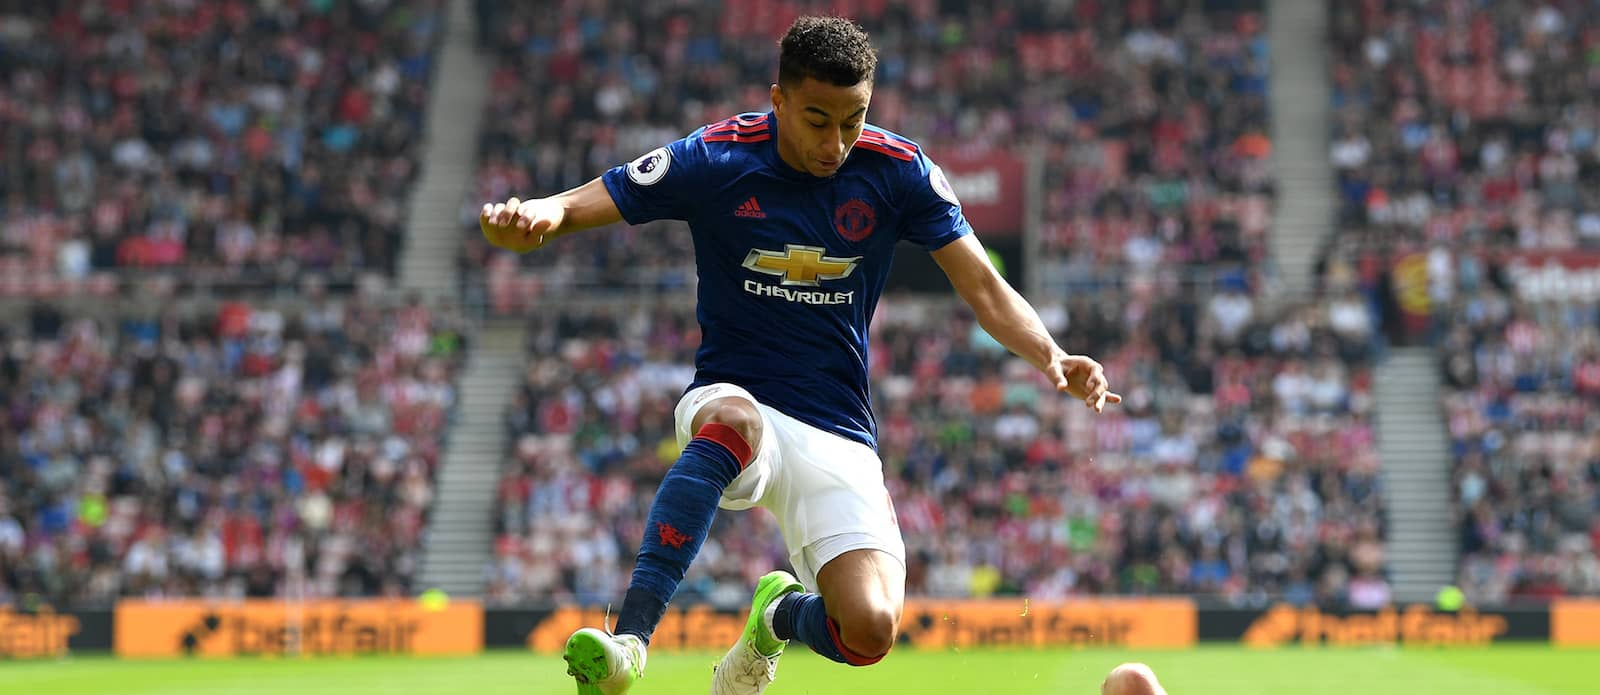 Jesse Lingard shows he's a class act with brilliant gesture towards Sunderland fan